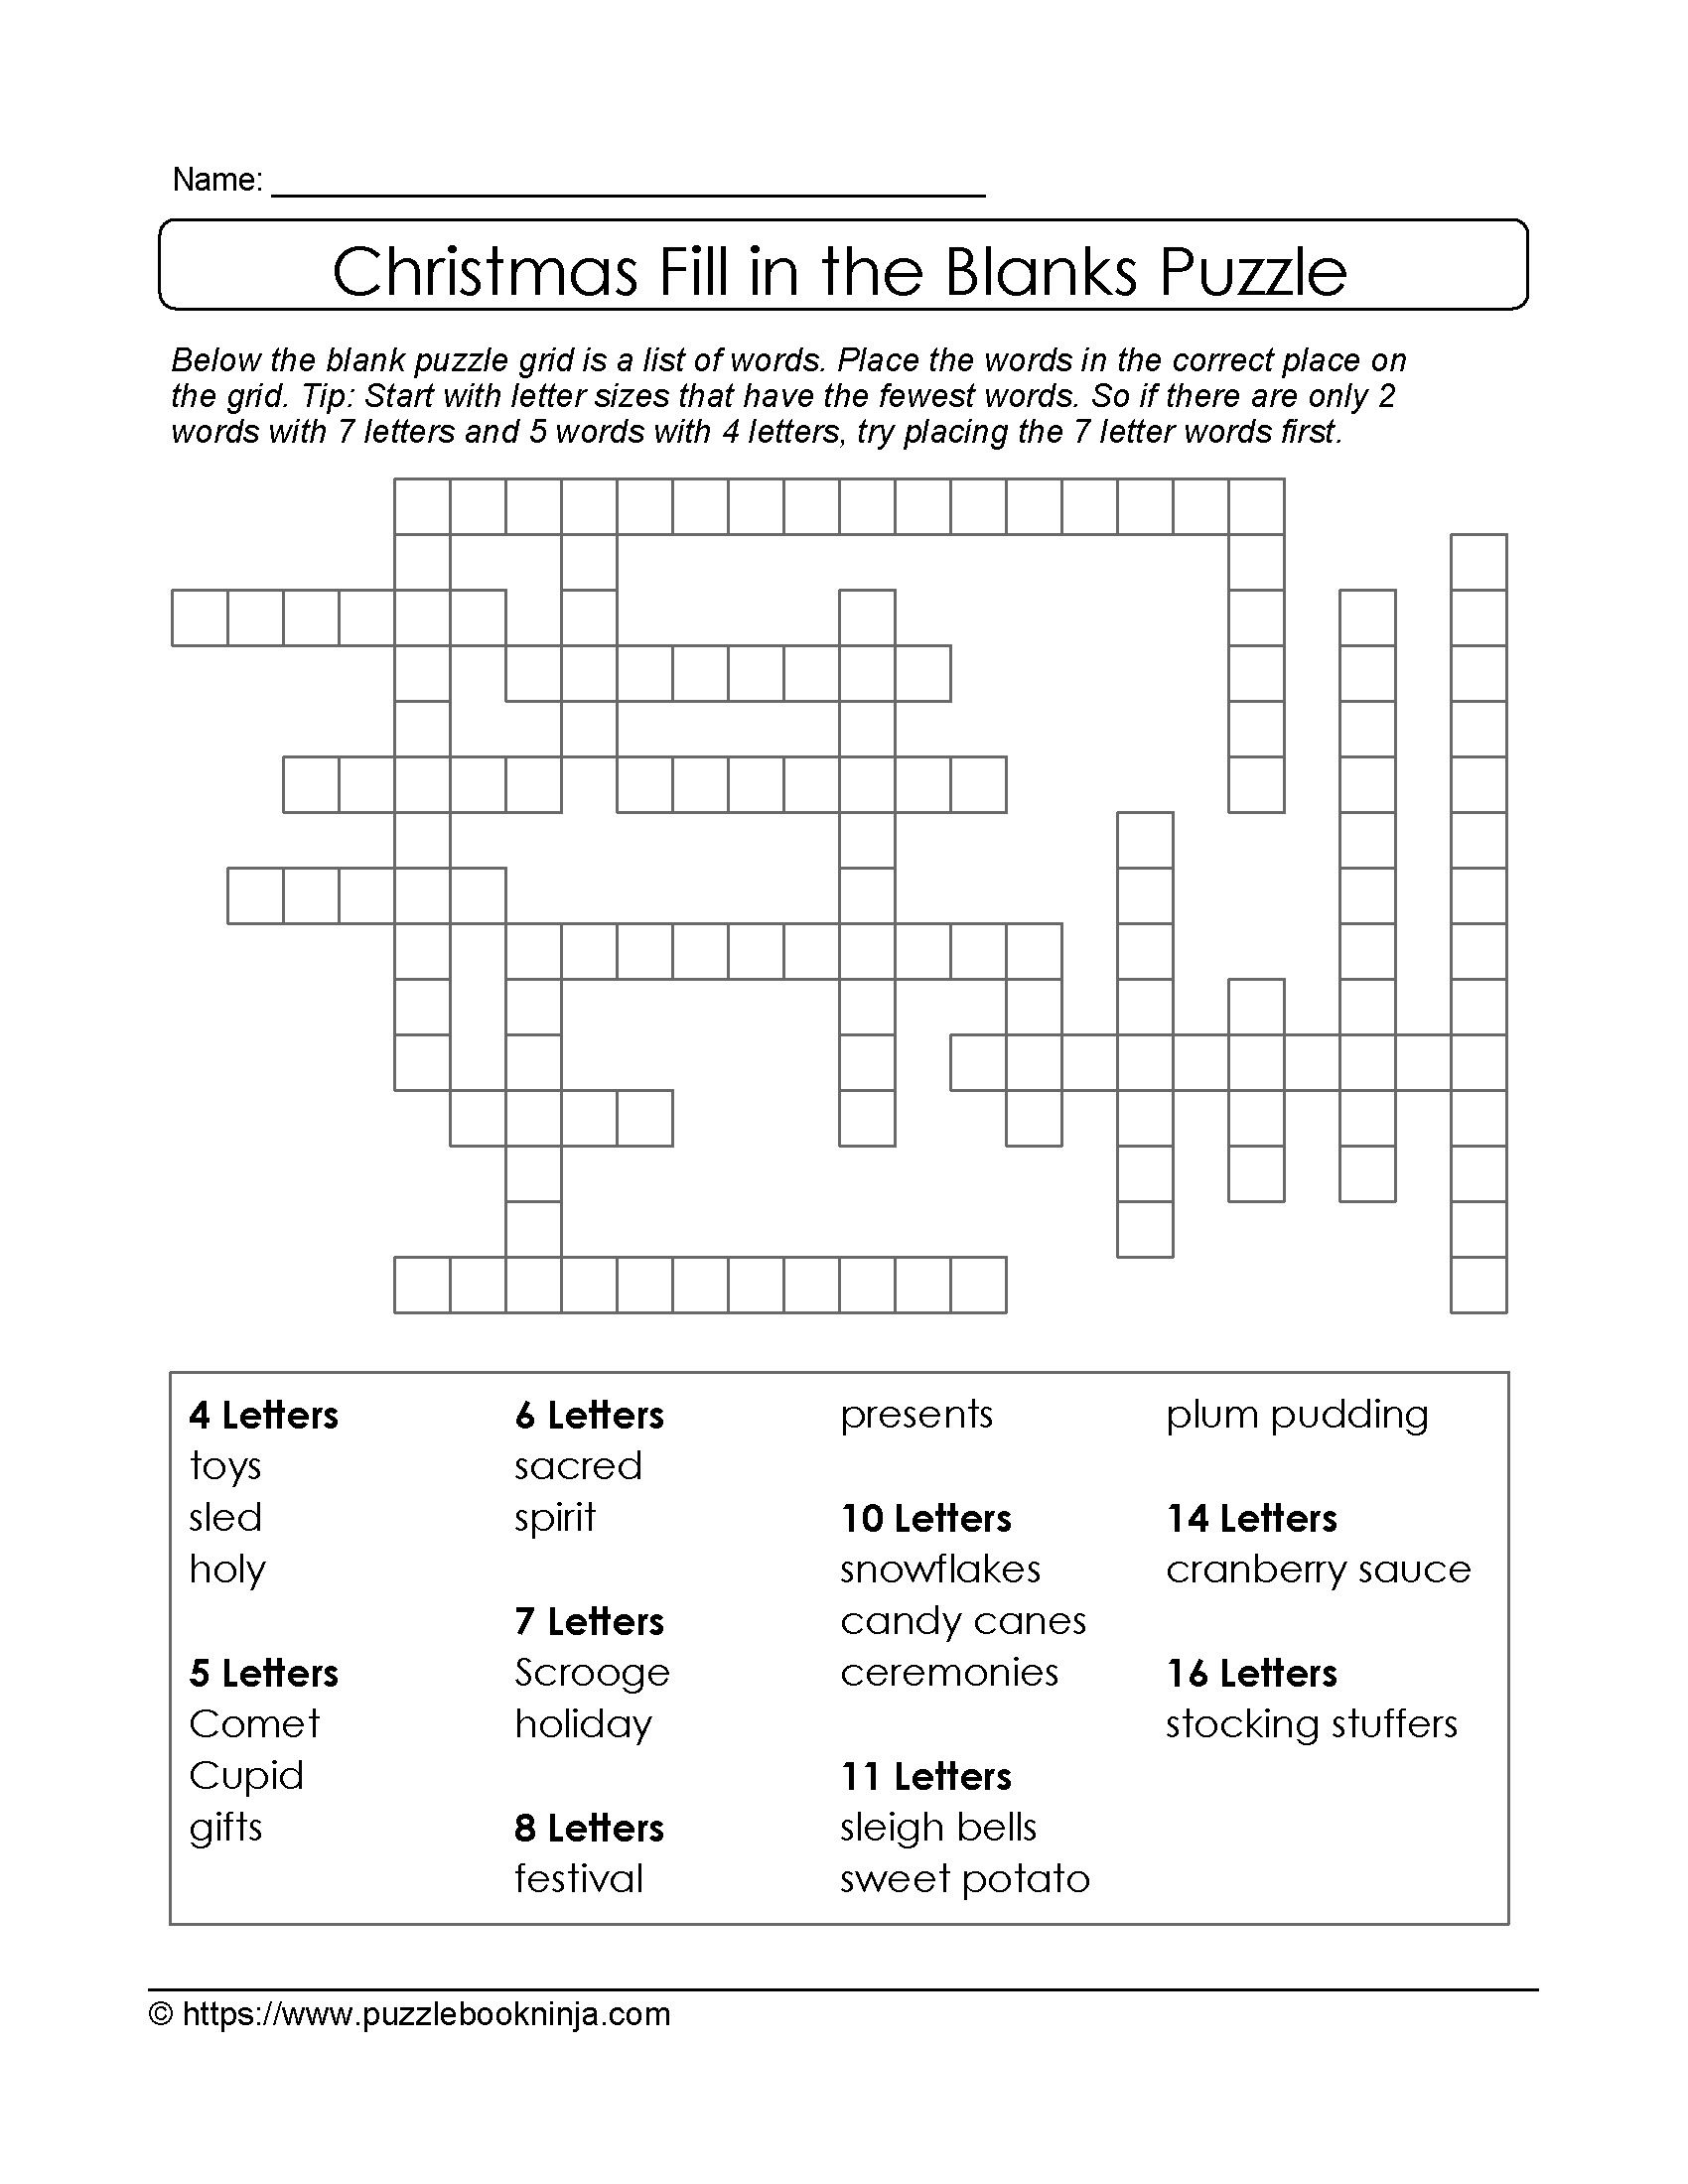 Puzzles To Print. Free Xmas Theme Fill In The Blanks Puzzle - 9 Letter Word Puzzles Printable